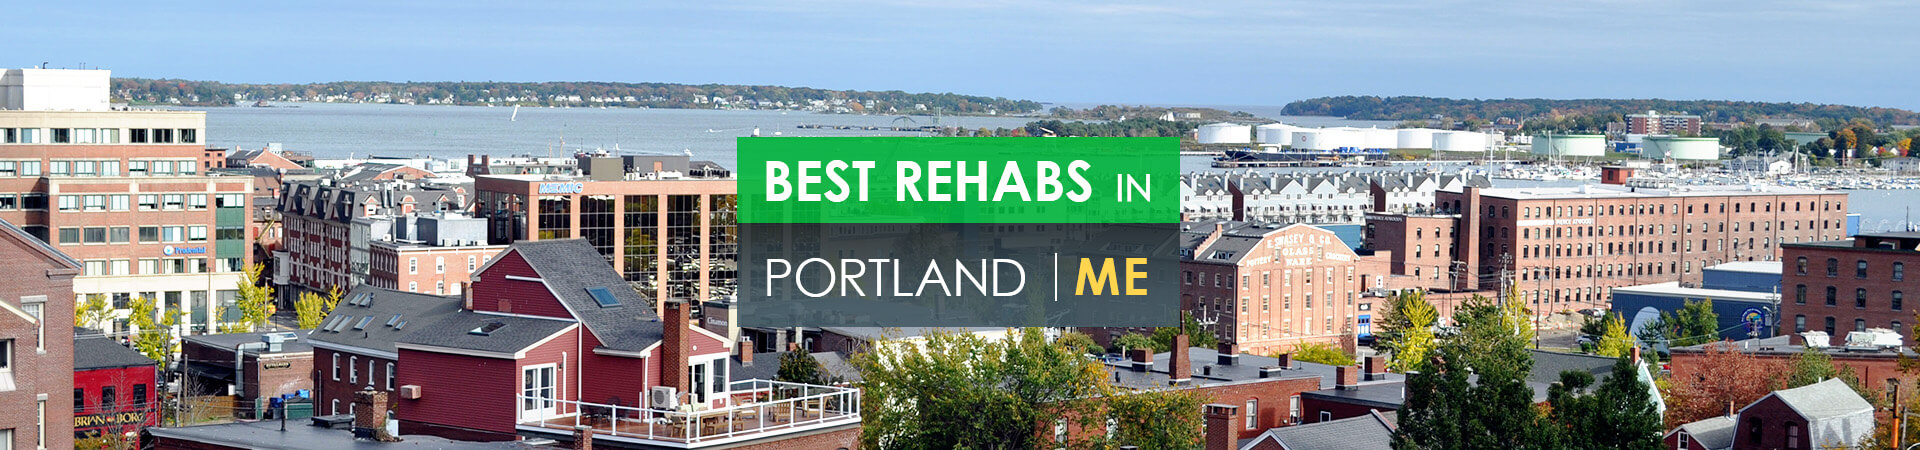 Best rehabs in Portland, ME